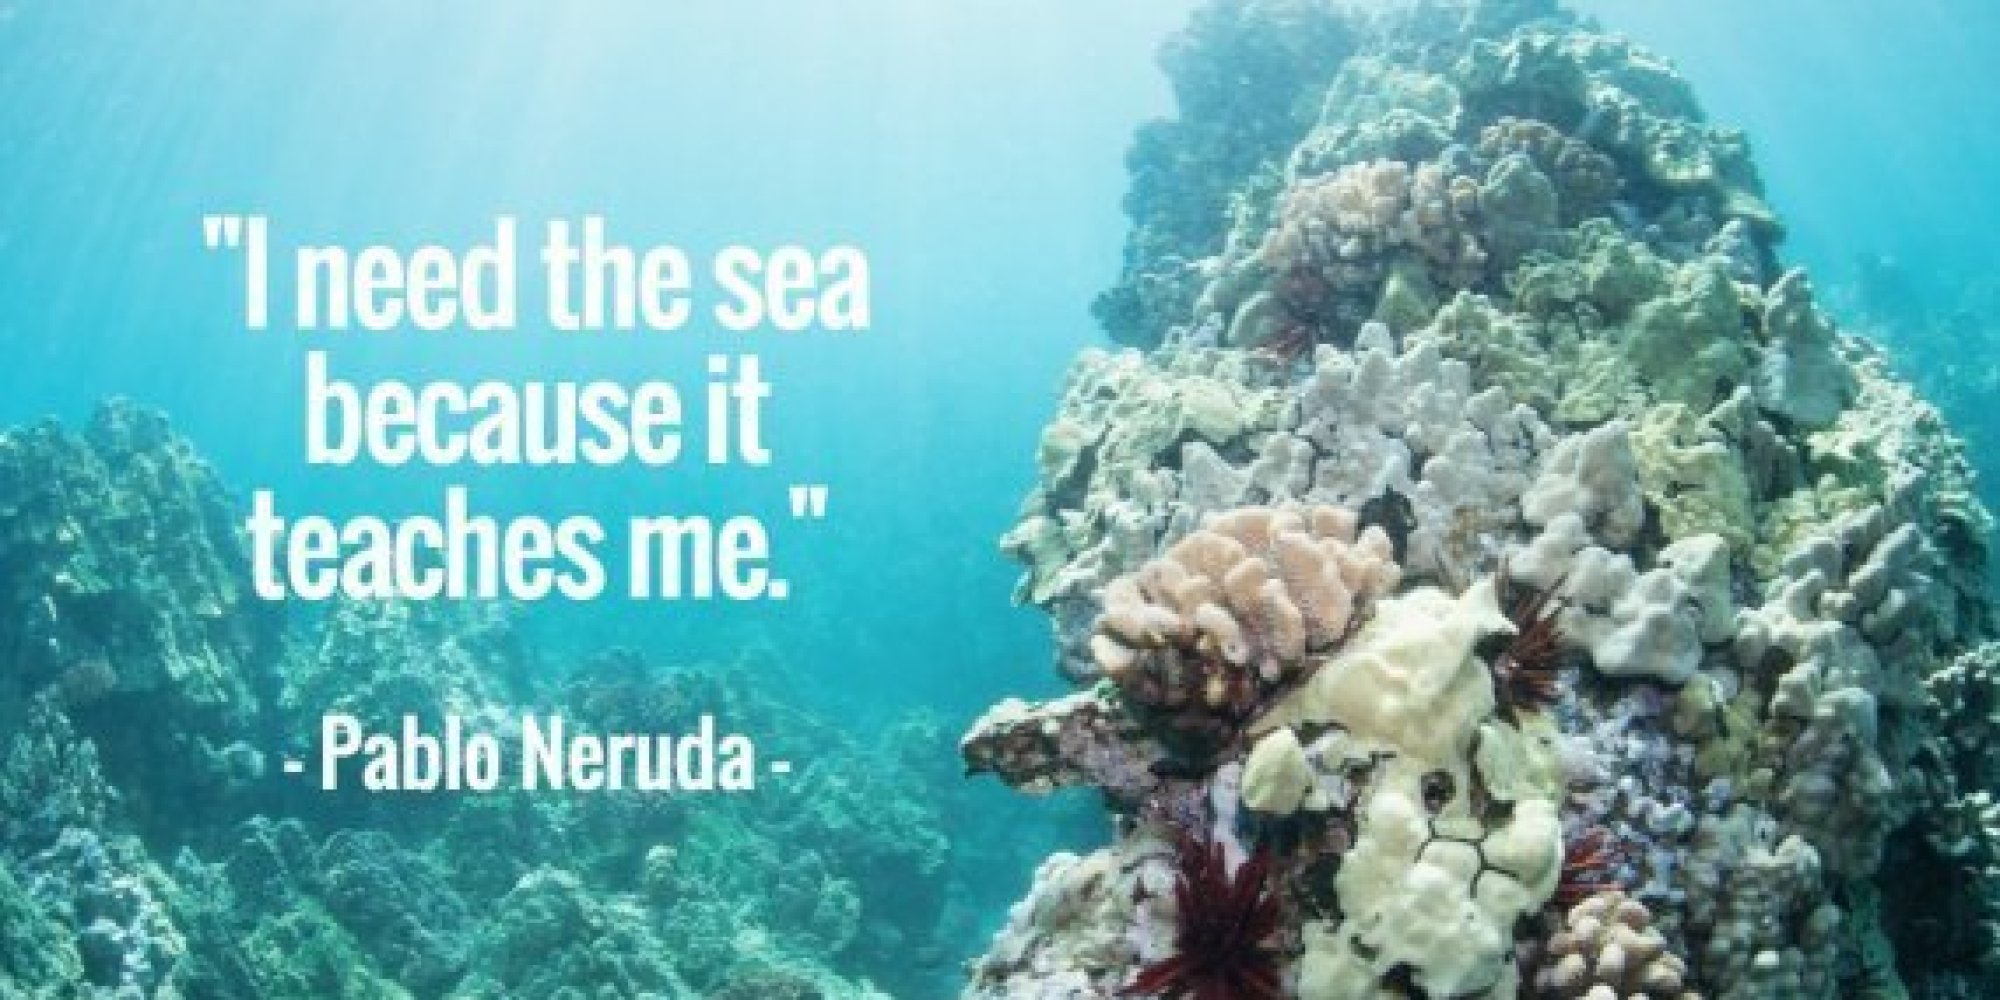 11 Quotes About The Ocean That Remind Us To Protect It